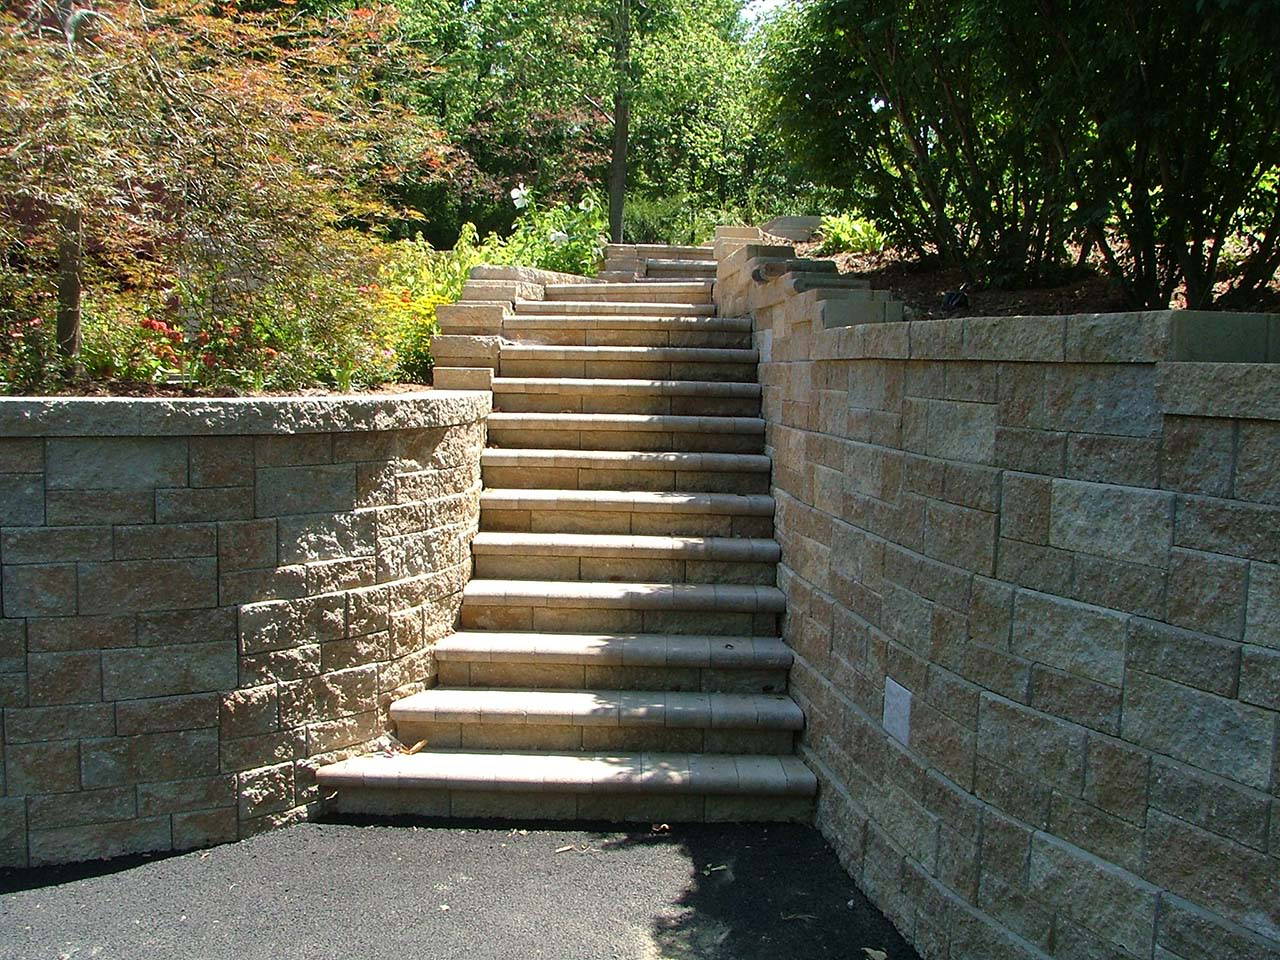 Landscaping Wall Steps : Retaining wall steps album